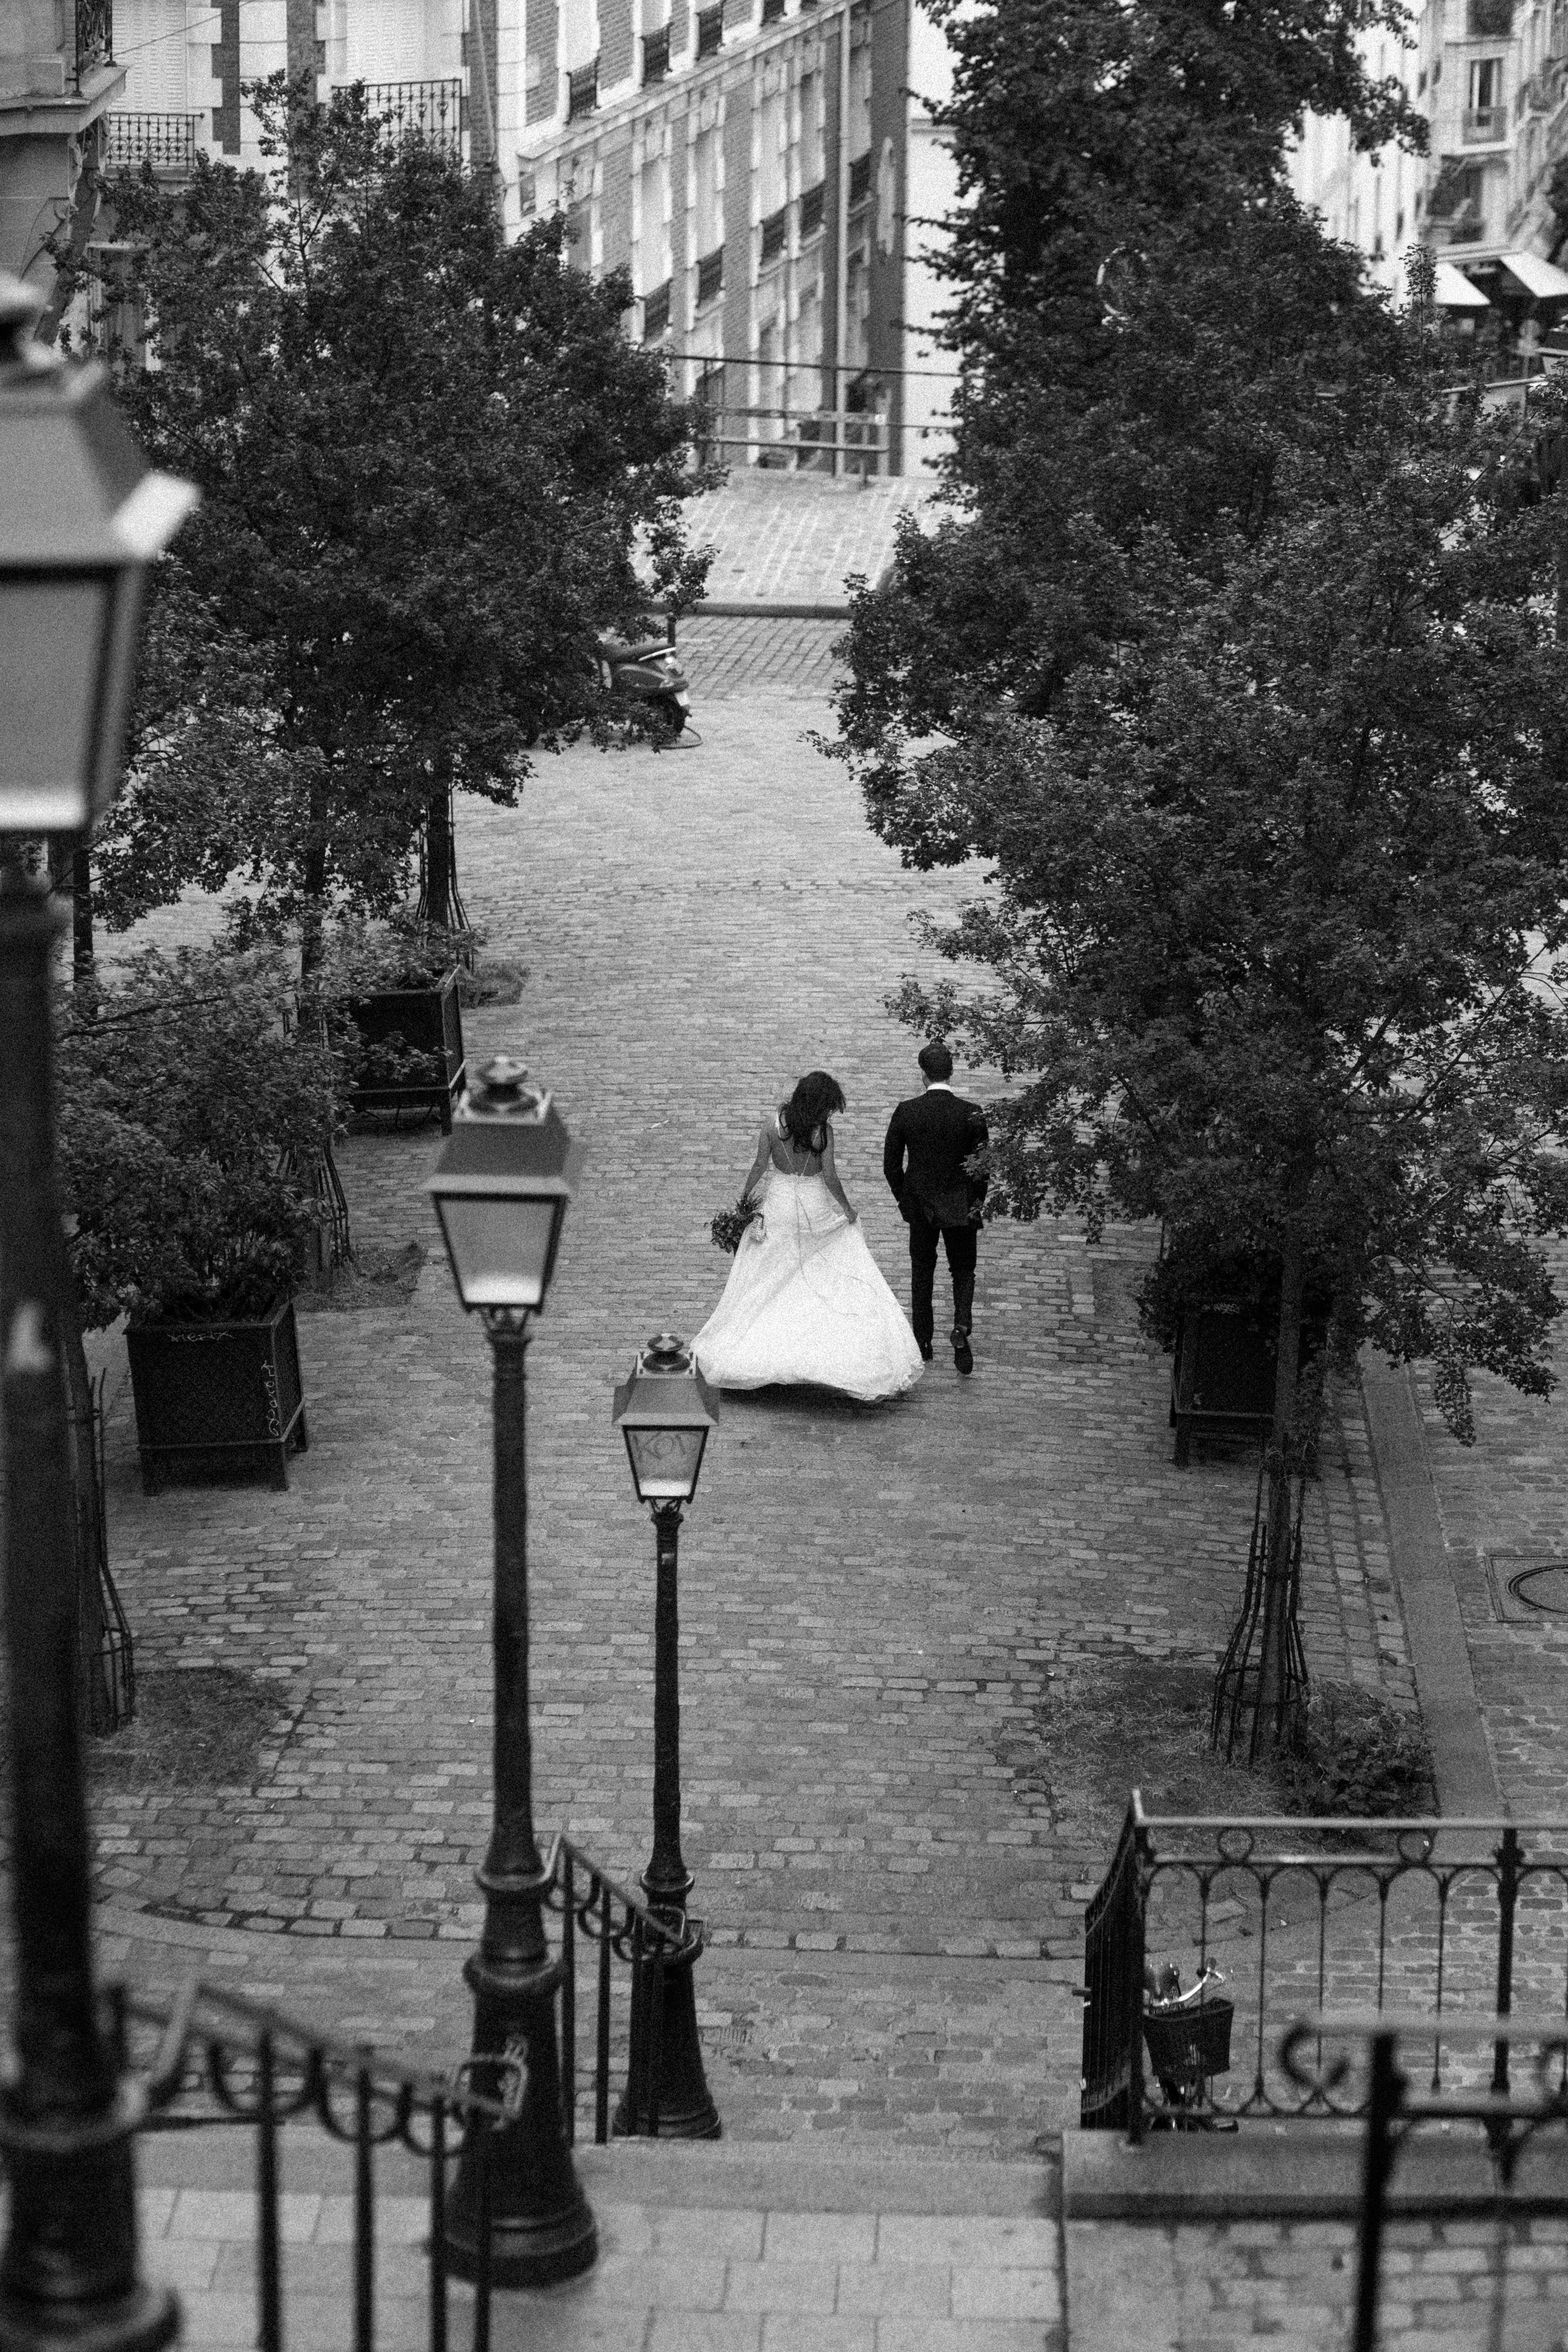 paris wedding photographer craig george hannah and mitch elopment-184.jpg